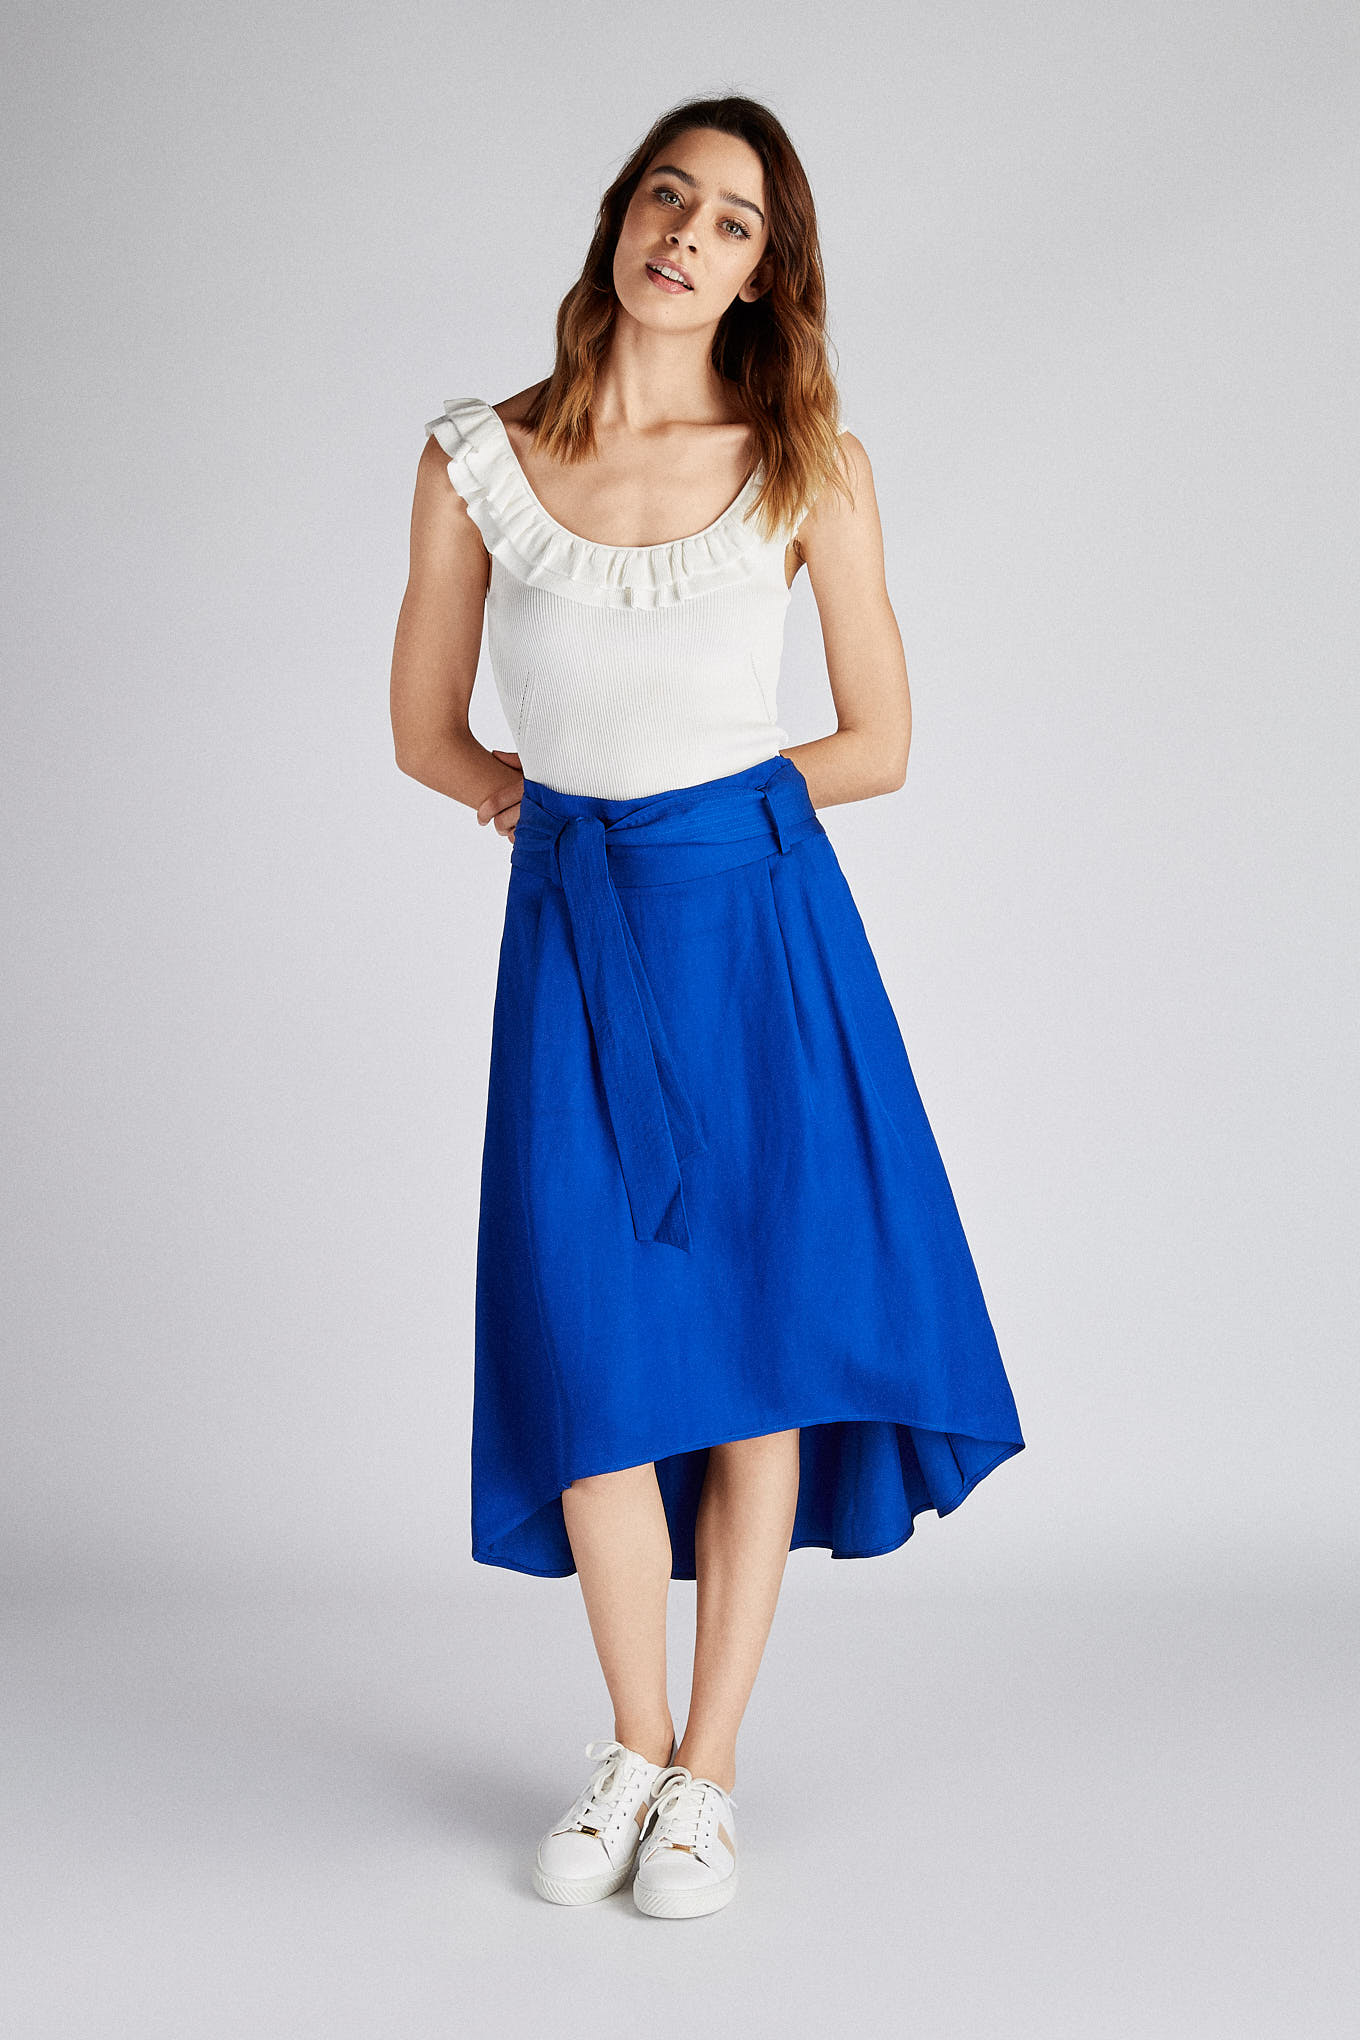 Skirt Royal Blue Fantasy Woman